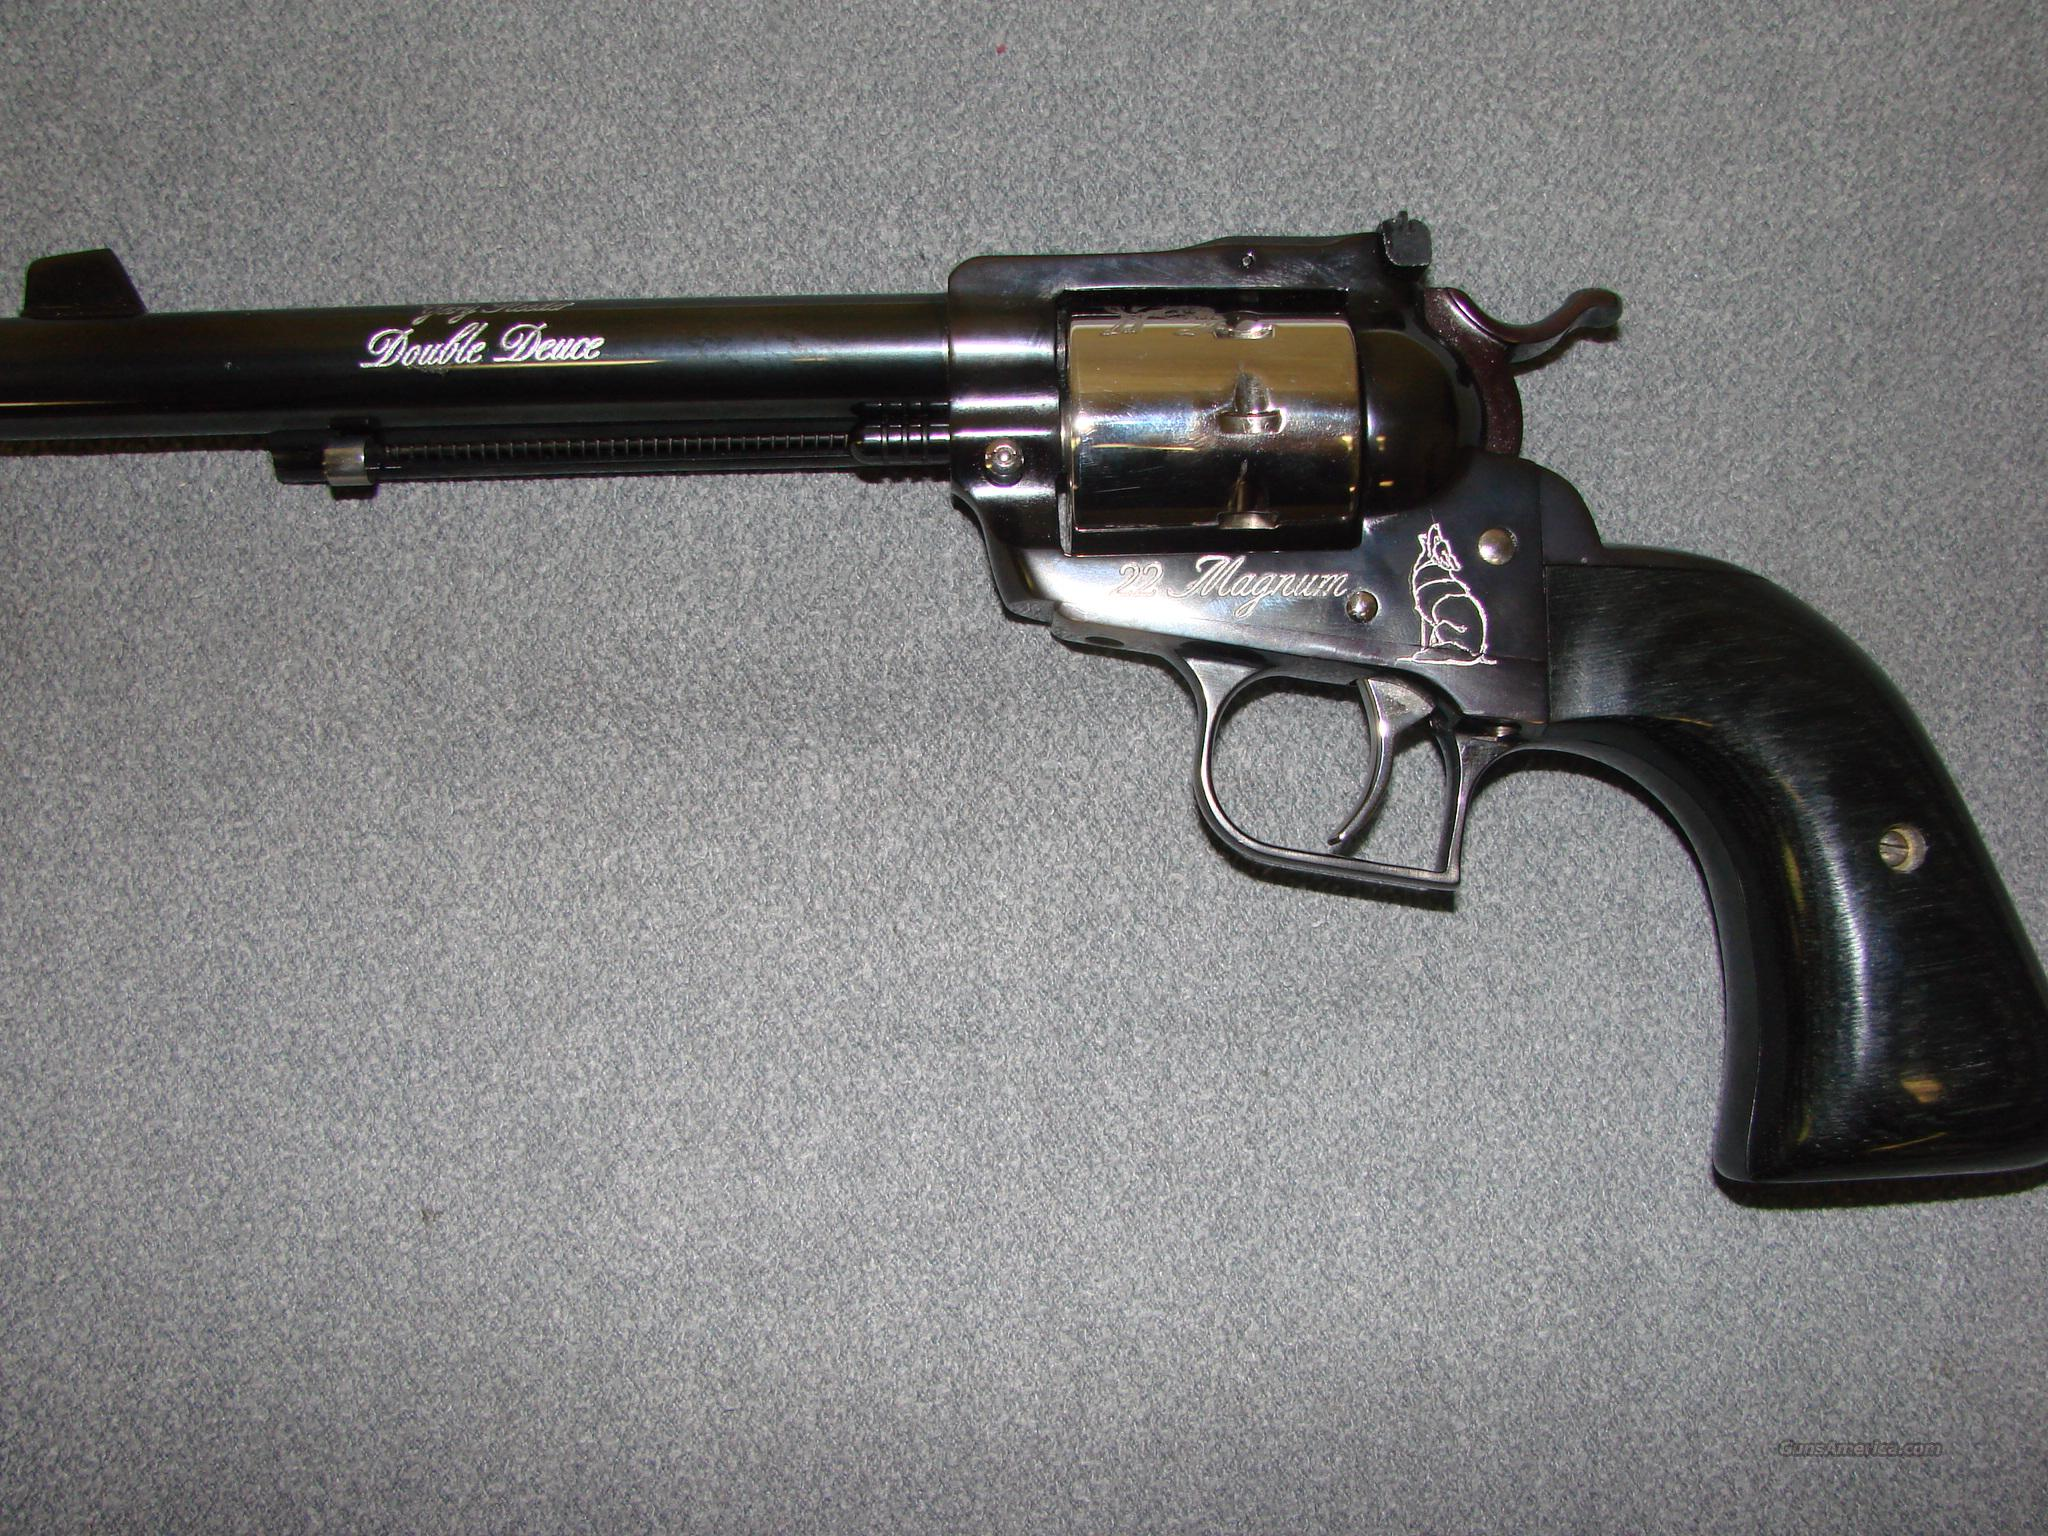 Ruger Single Six Gary Reeder   Guns > Pistols > Ruger Single Action Revolvers > Single Six Type